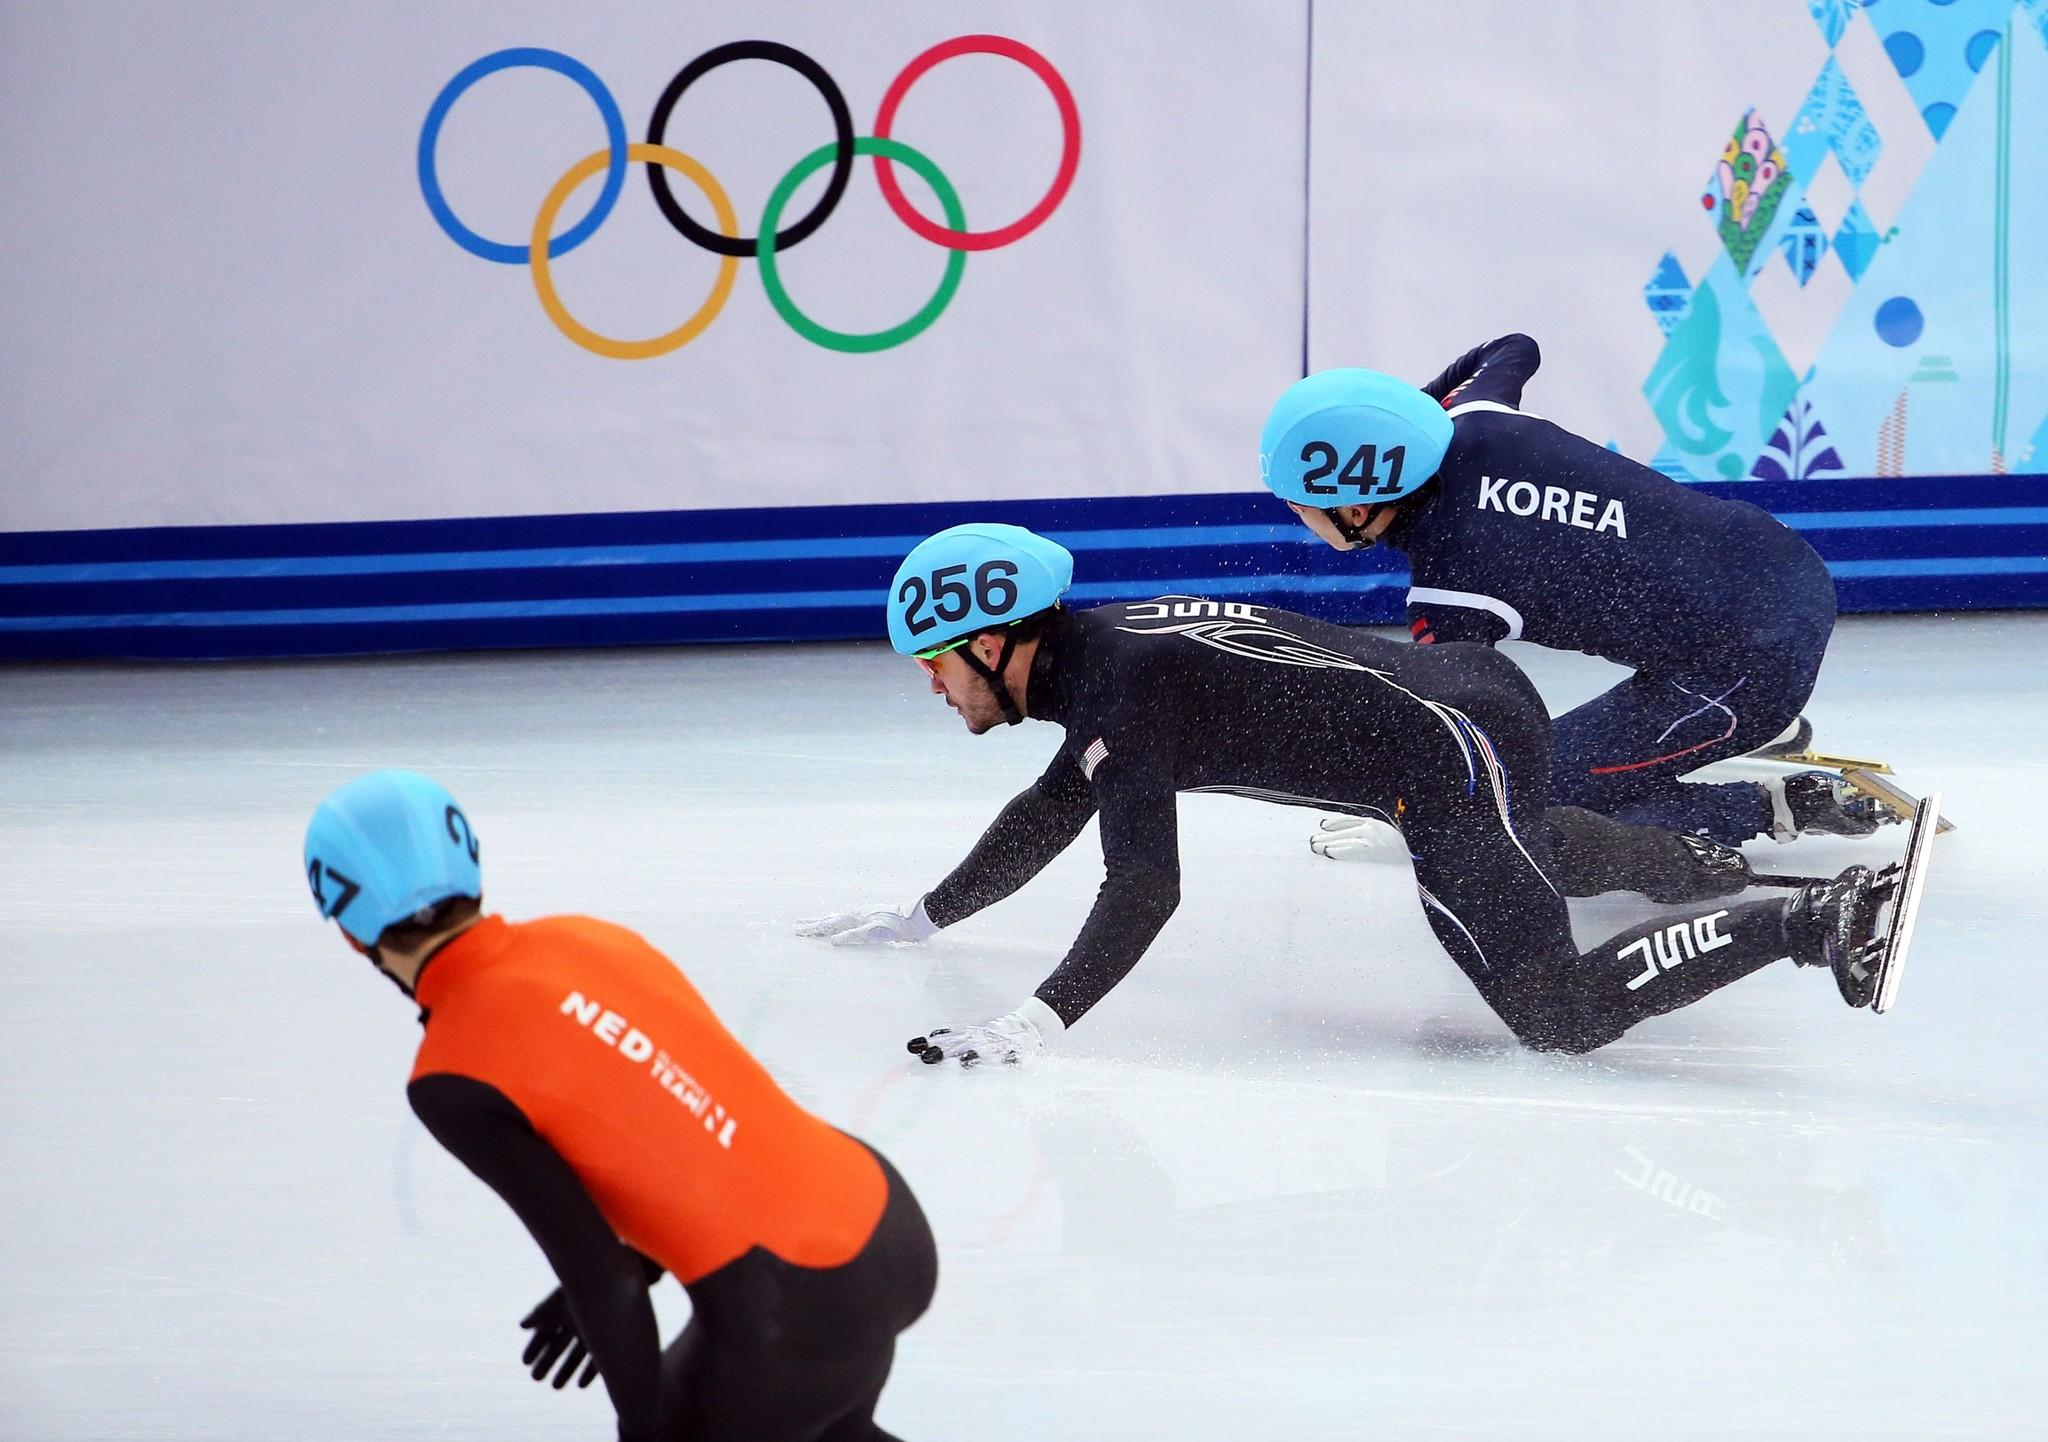 Eduardo Alvarez of the United States and Ho-Suk Lee of South Korea collide and fall as they compete in the Short Track Speed Skating Men's 5000m Relay Semifinal.